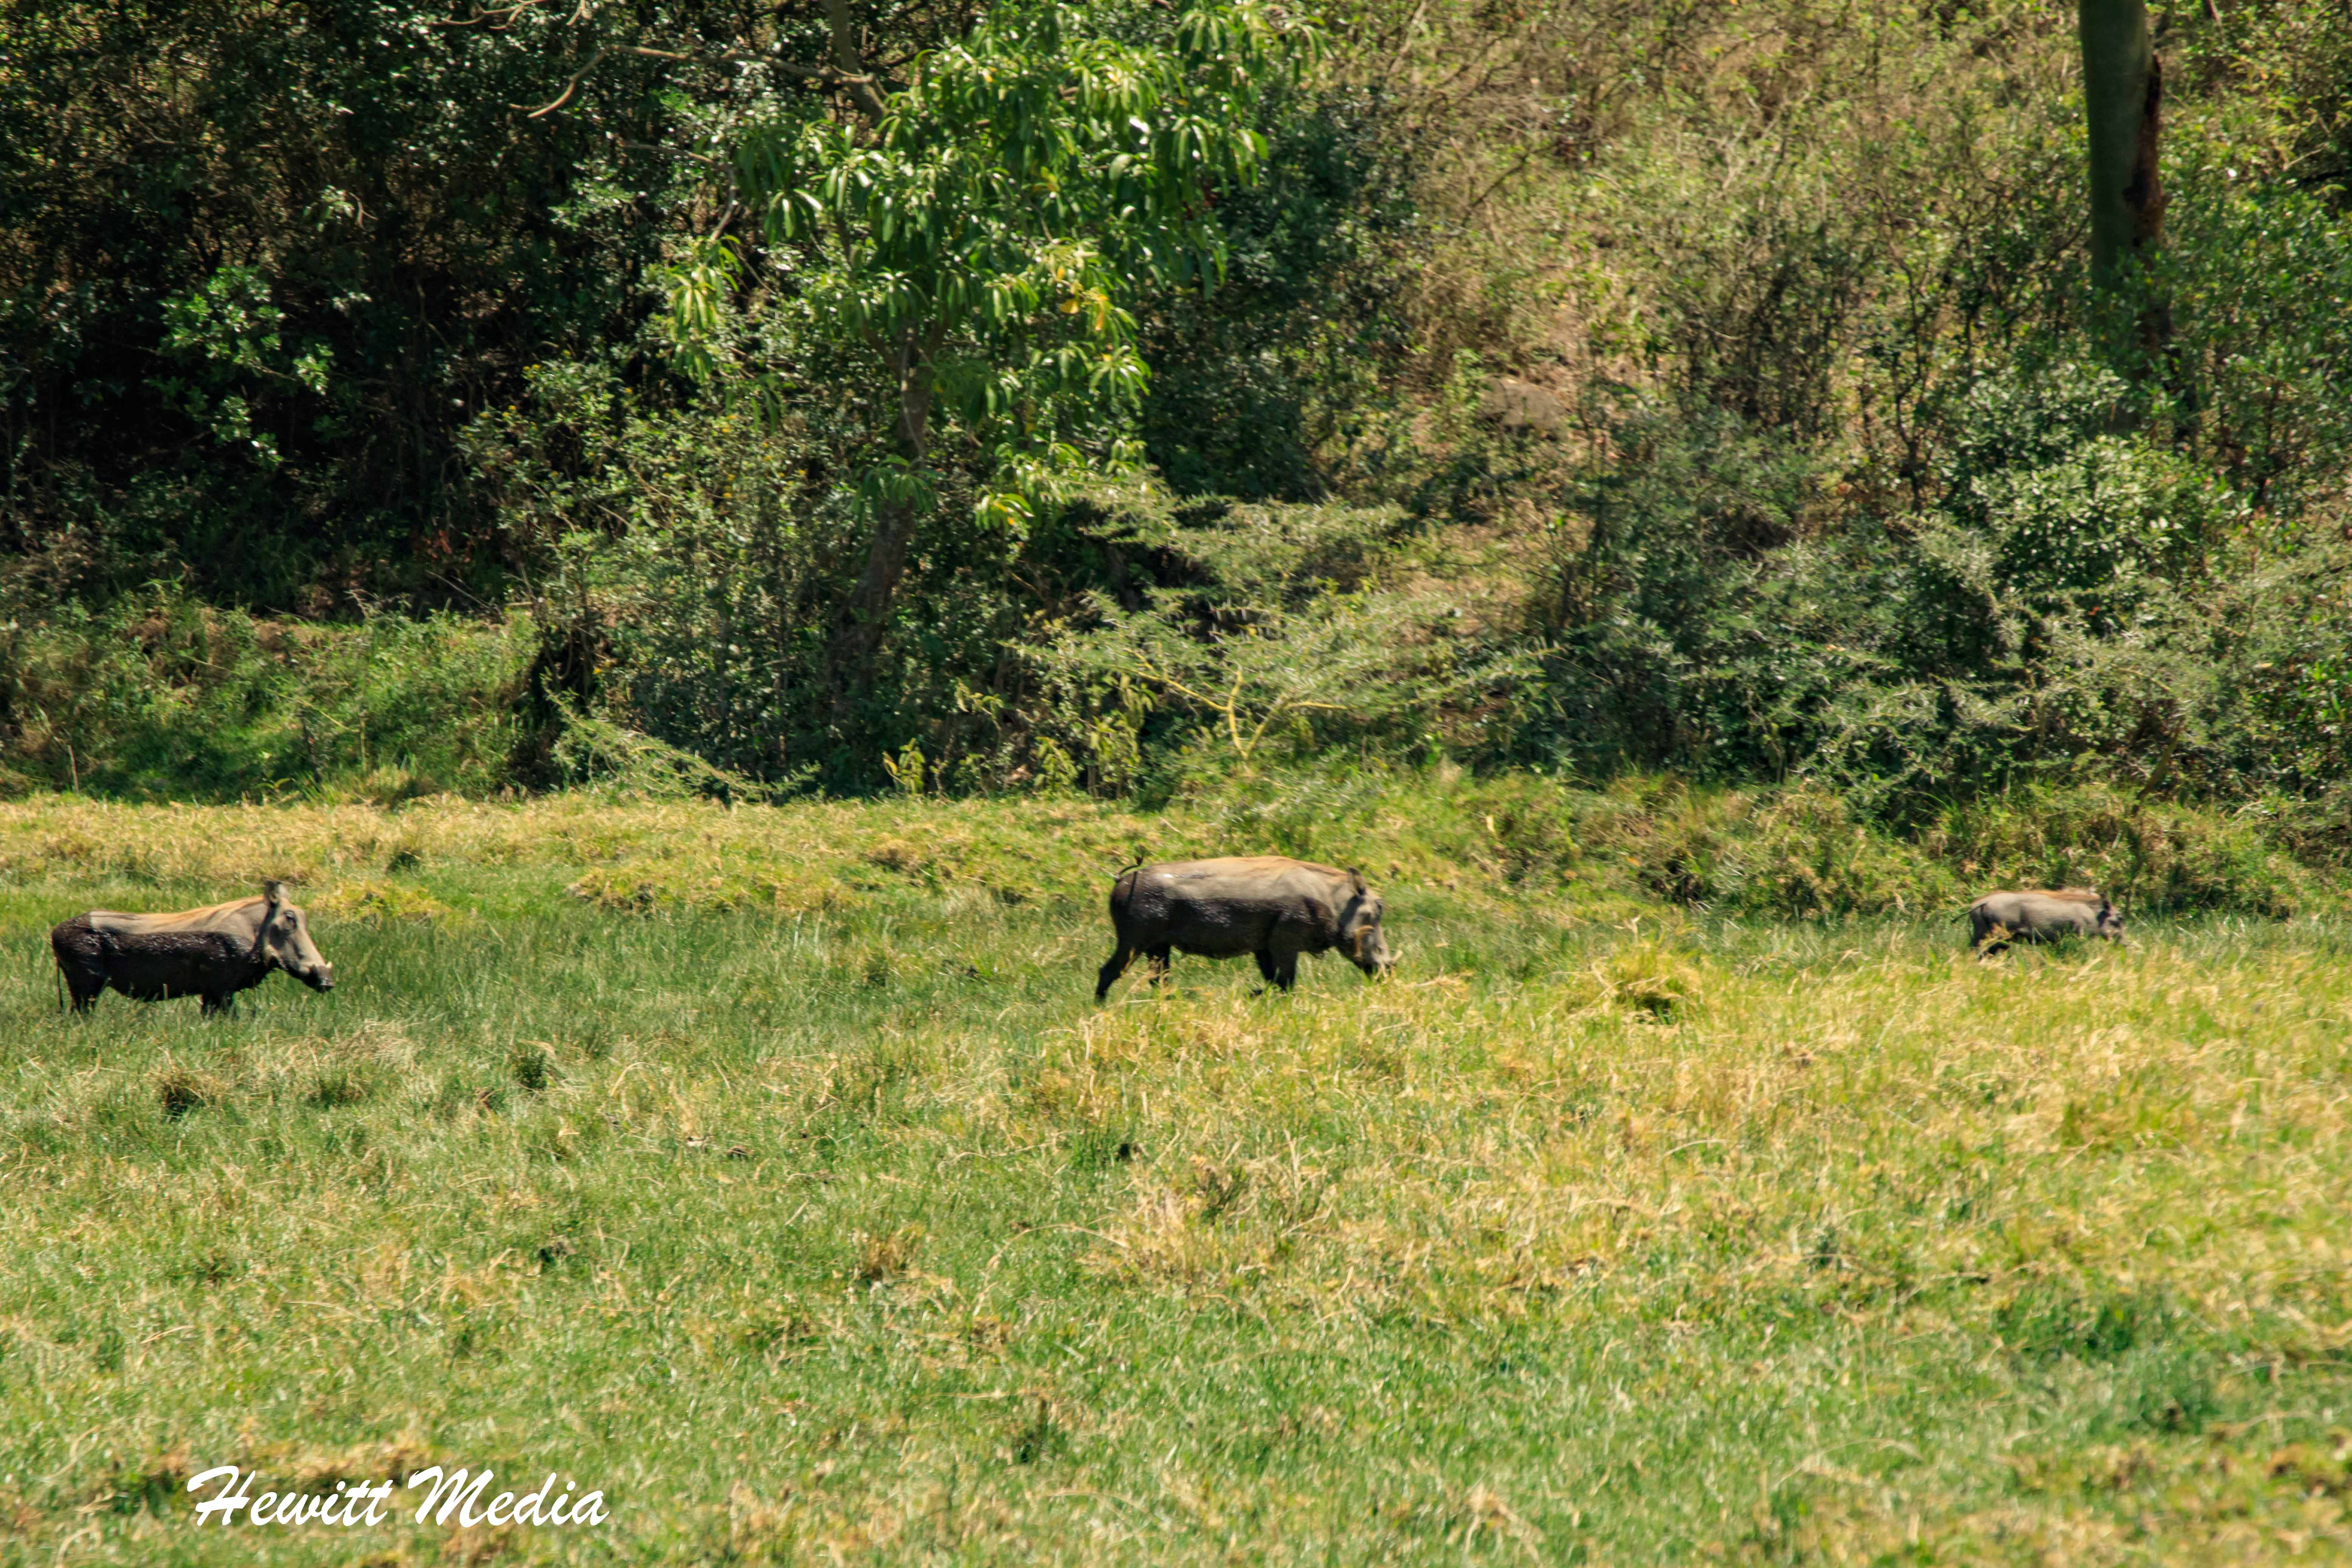 Seeing warthogs while on walking safari